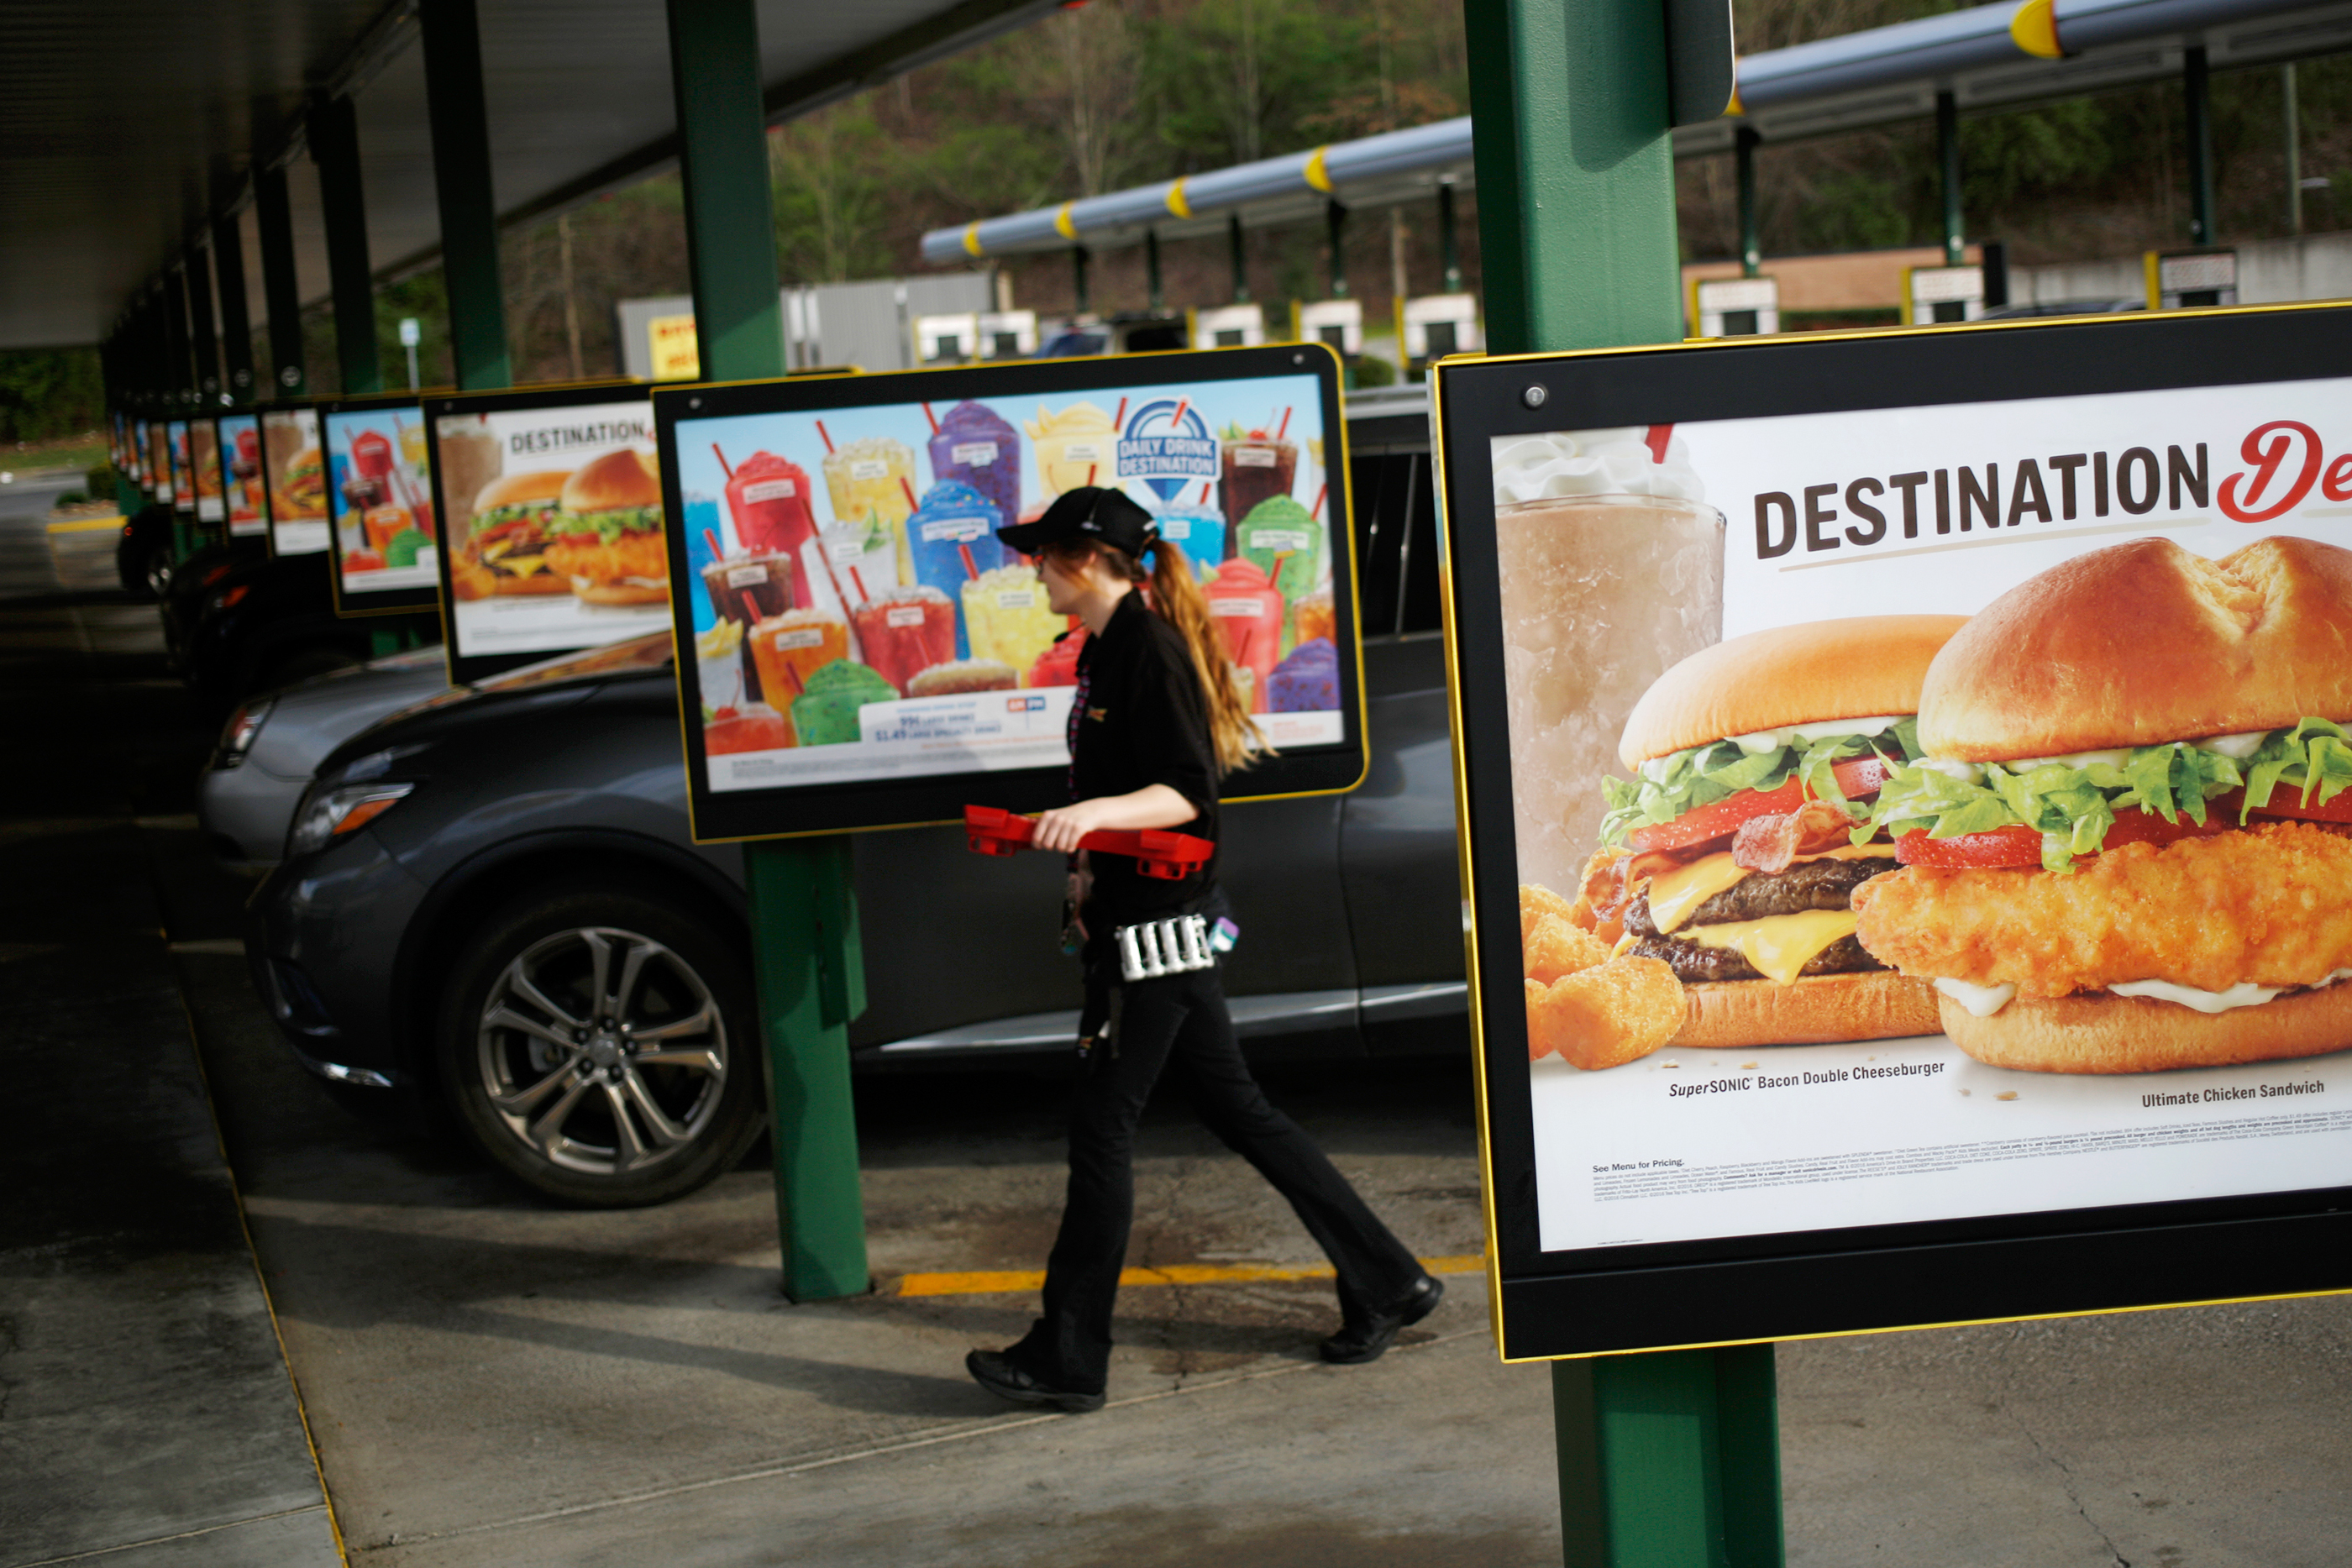 A carhop walks through the parking lot after delivering food to a customer at a Sonic Corp. drive-in fast food restaurant in Knoxville, Tennessee, on March 25, 2017.